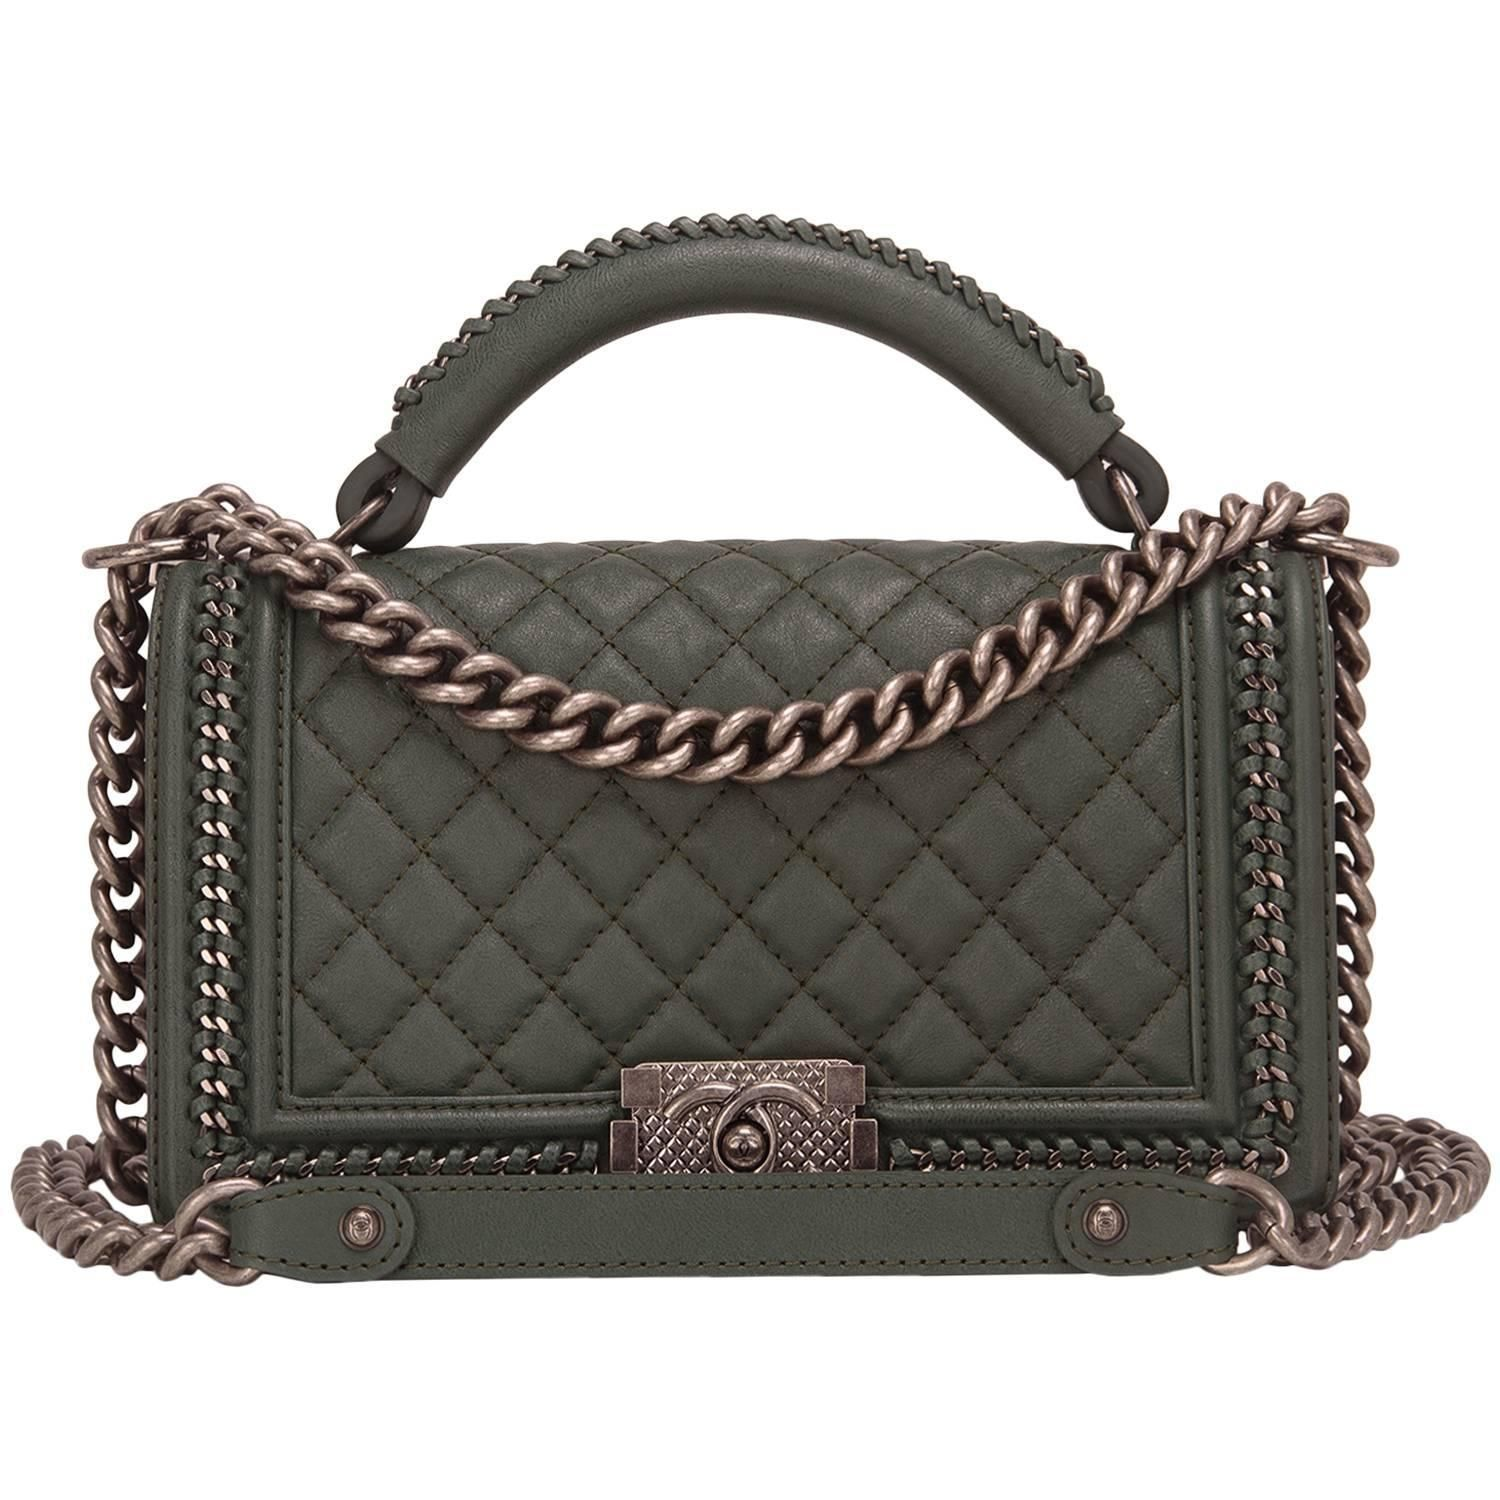 4acabd122ec6 Chanel Dark Green Medium Boy Bag with Handle in 2019 | My 1stdibs ...